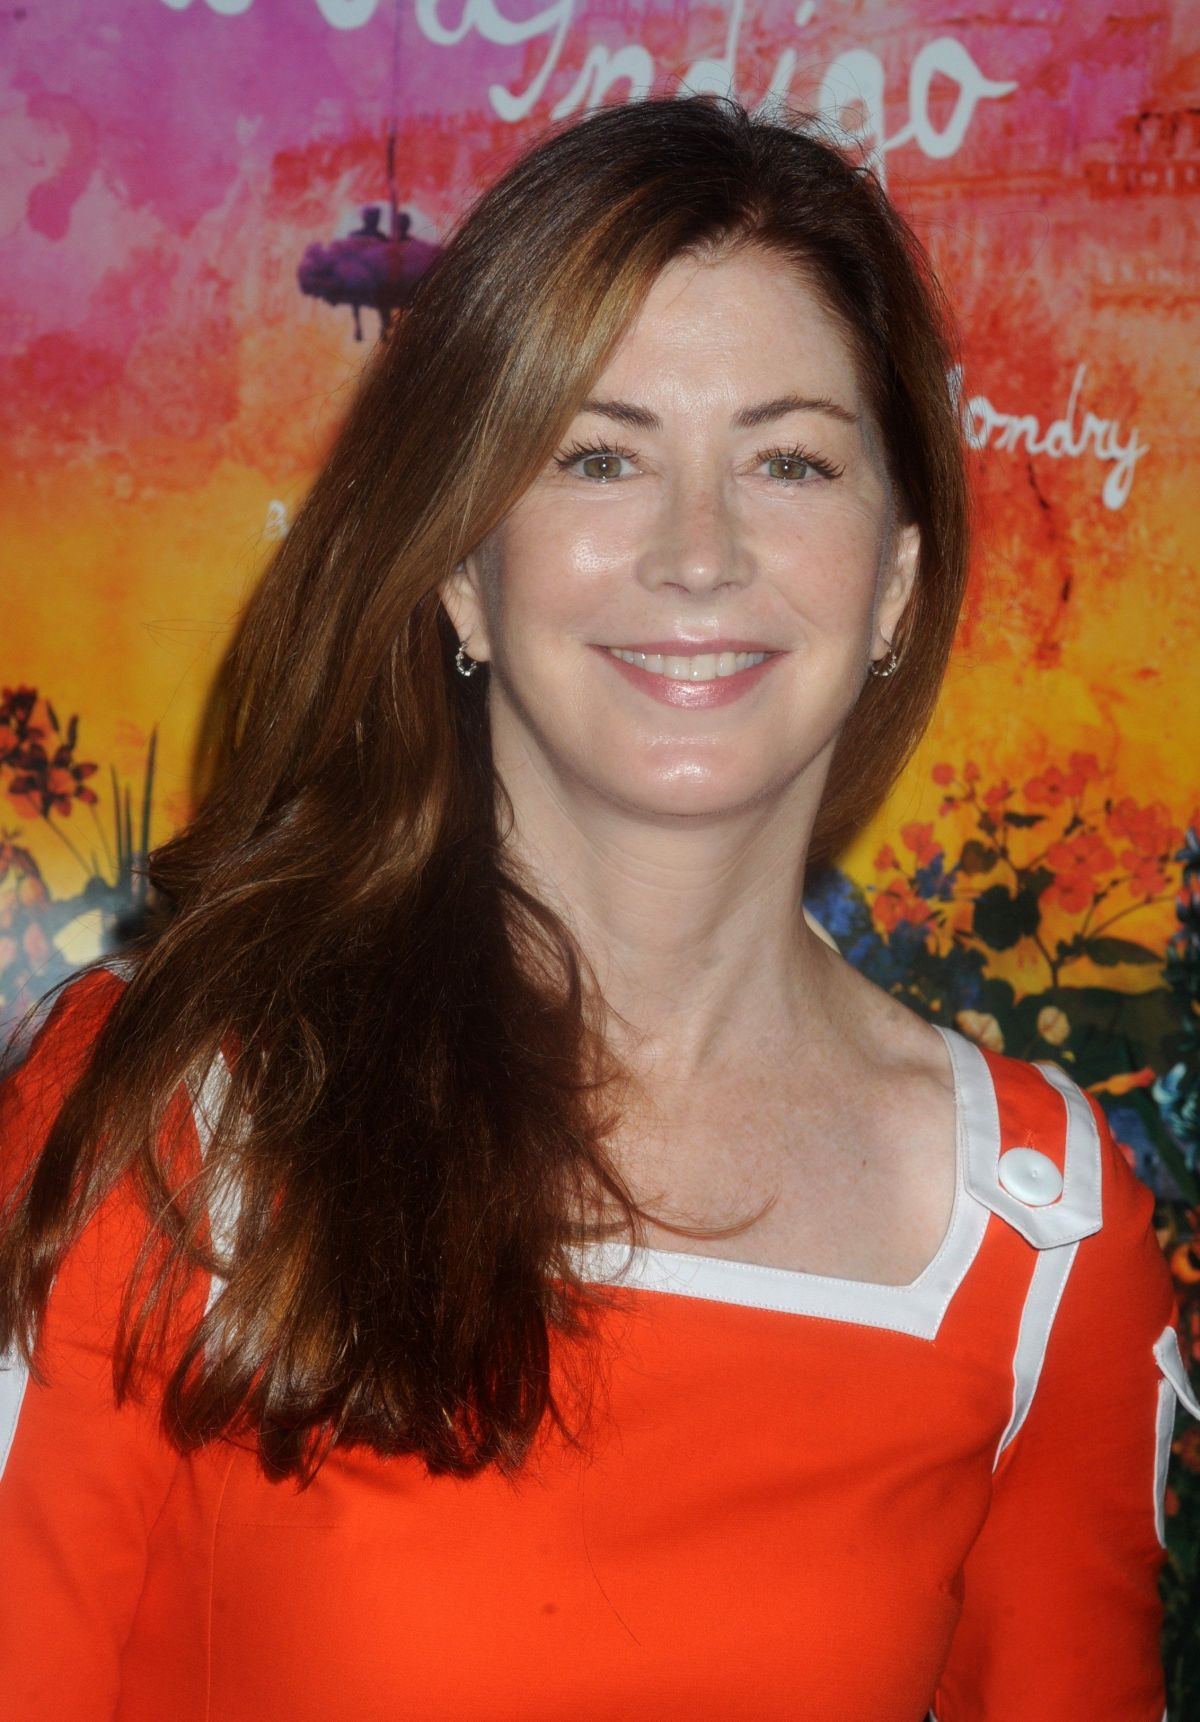 dana delany pasadenadana delany 2016, dana delany 2017, dana delany vk, dana delany desperate housewives, dana delany china beach, dana delany films, dana delany sister, dana delany desperate, dana delany photos, dana delany фото, dana delany pasadena, dana delany and jennifer beals, dana delany religion, dana delany nathan fillion, dana delany emmy, dana delany looks, dana delany music, dana delany new series, dana delany instagram, dana delany body of proof